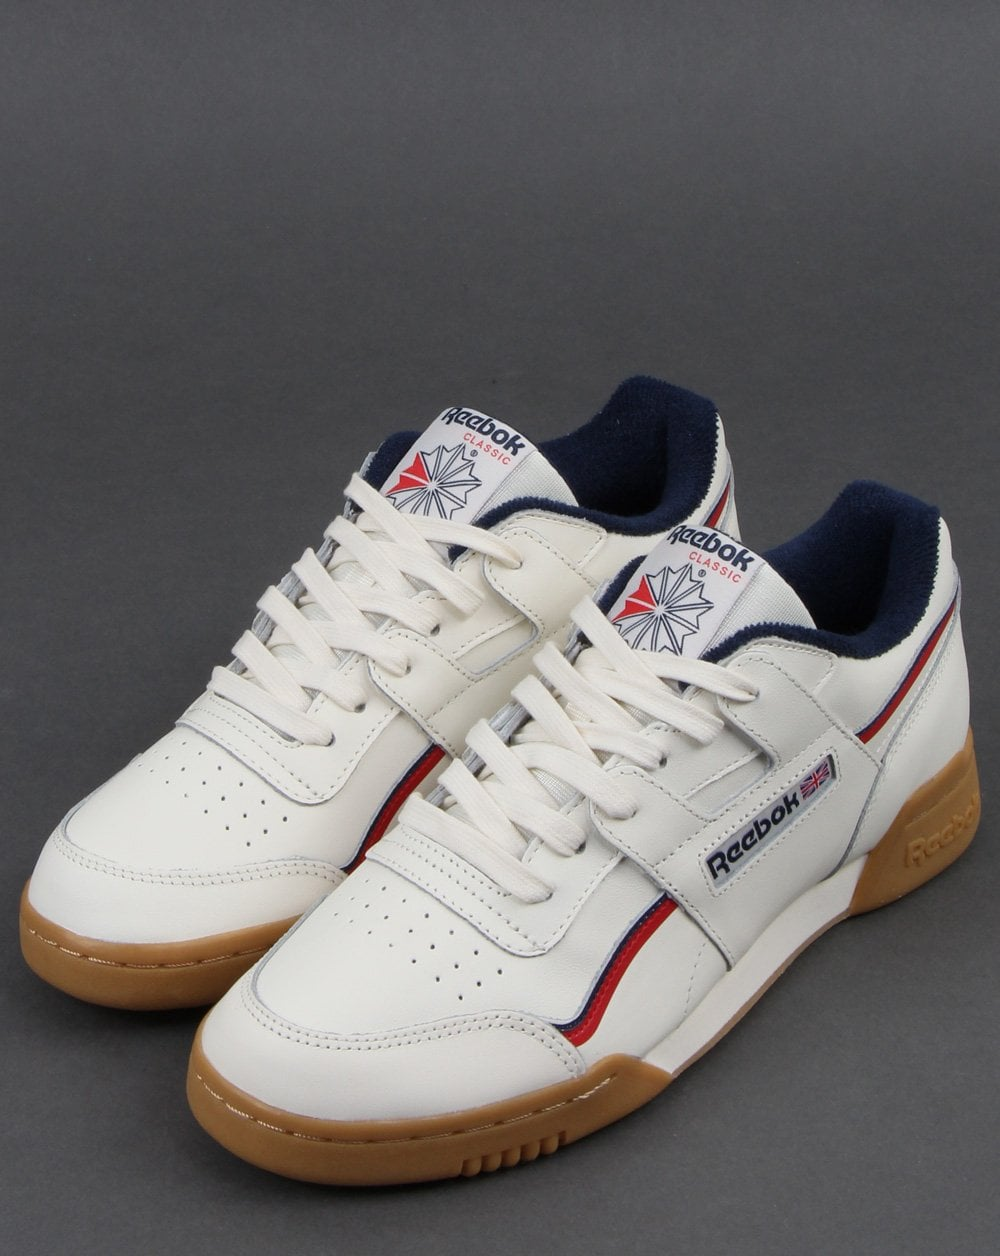 c8681760ae1 Reebok Workout - It s Still All About The 80s Classics - 80 s Casual ...